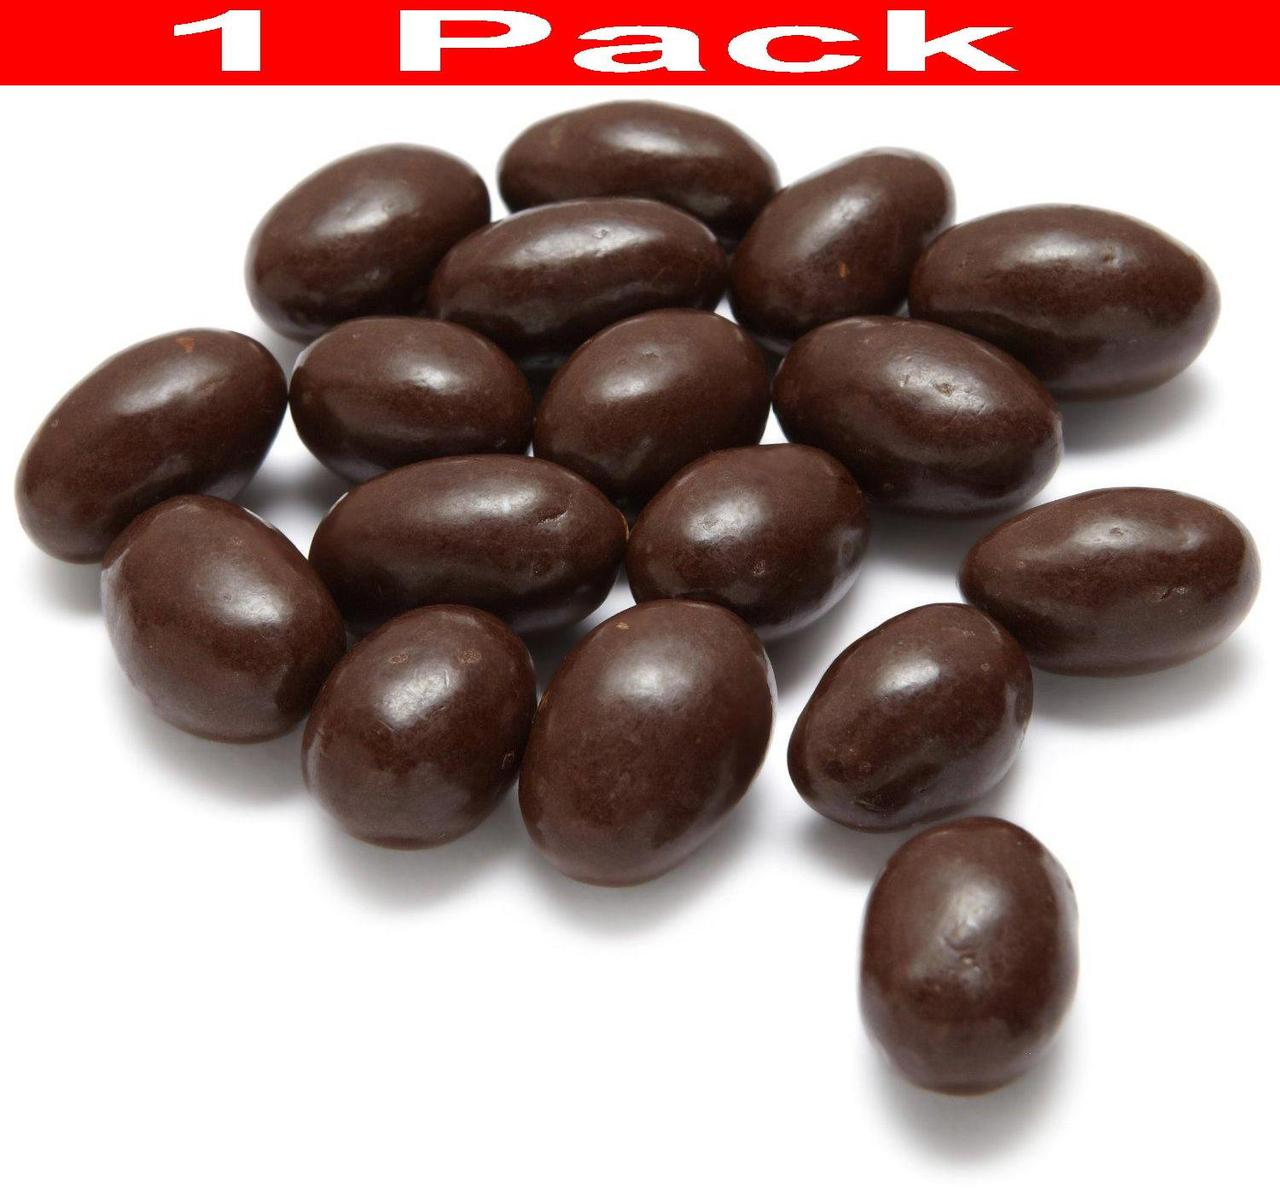 Sunspire Carob Almonds 10 LB (Pack of 1)